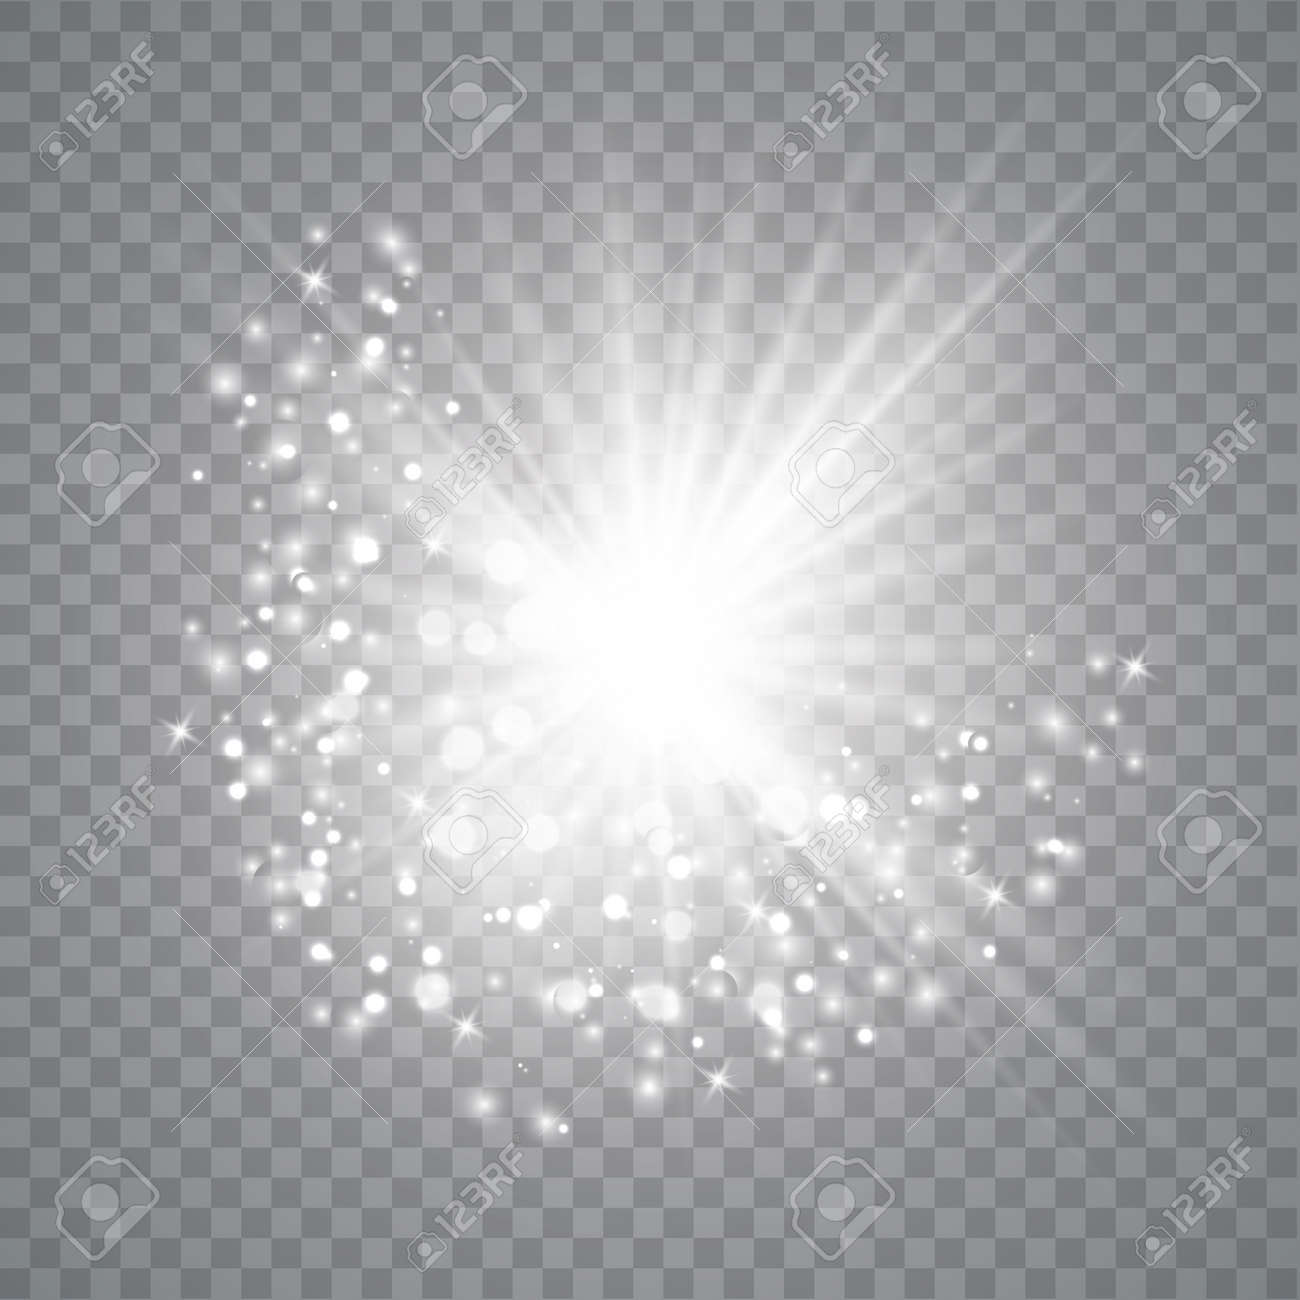 Glow light effect. Star burst with sparkles. Vector illustrator . Sparkling magic dust particles - 125137646